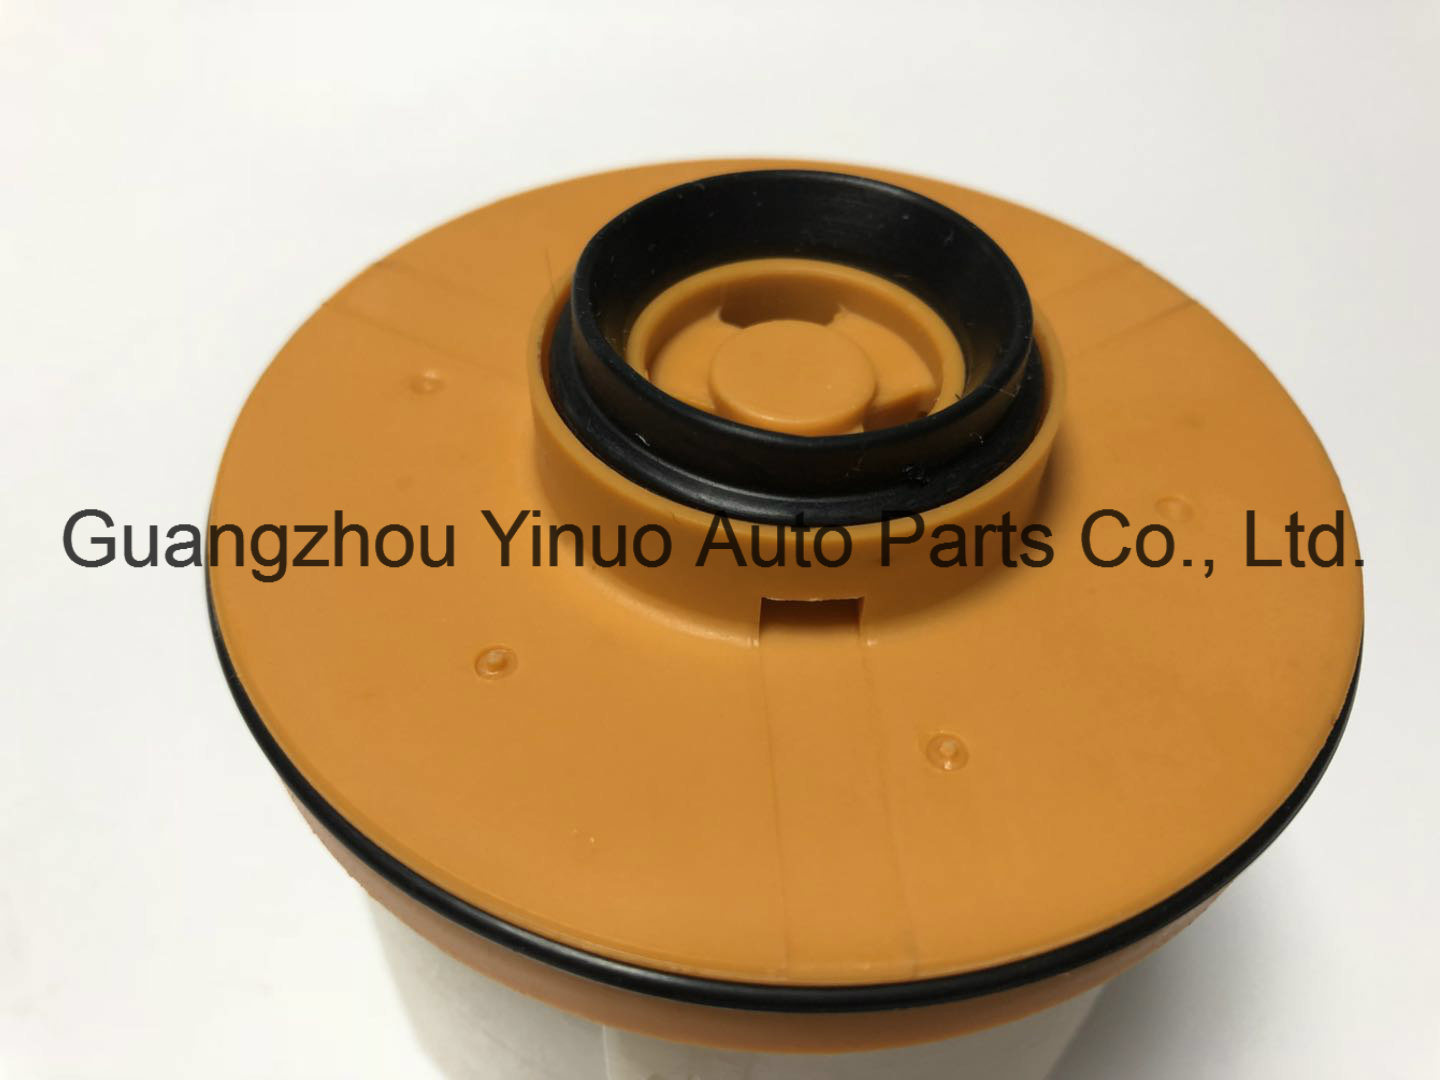 China Professional Factory Supply Standard Size Oem 23390 0l070 6 7 Powerstroke Fuel Filter 6special Discount And Protection Of Sales Area Provided To Our Distributor 7timely Delivery 8good After Sale Service 9small Moq Is Acceptable